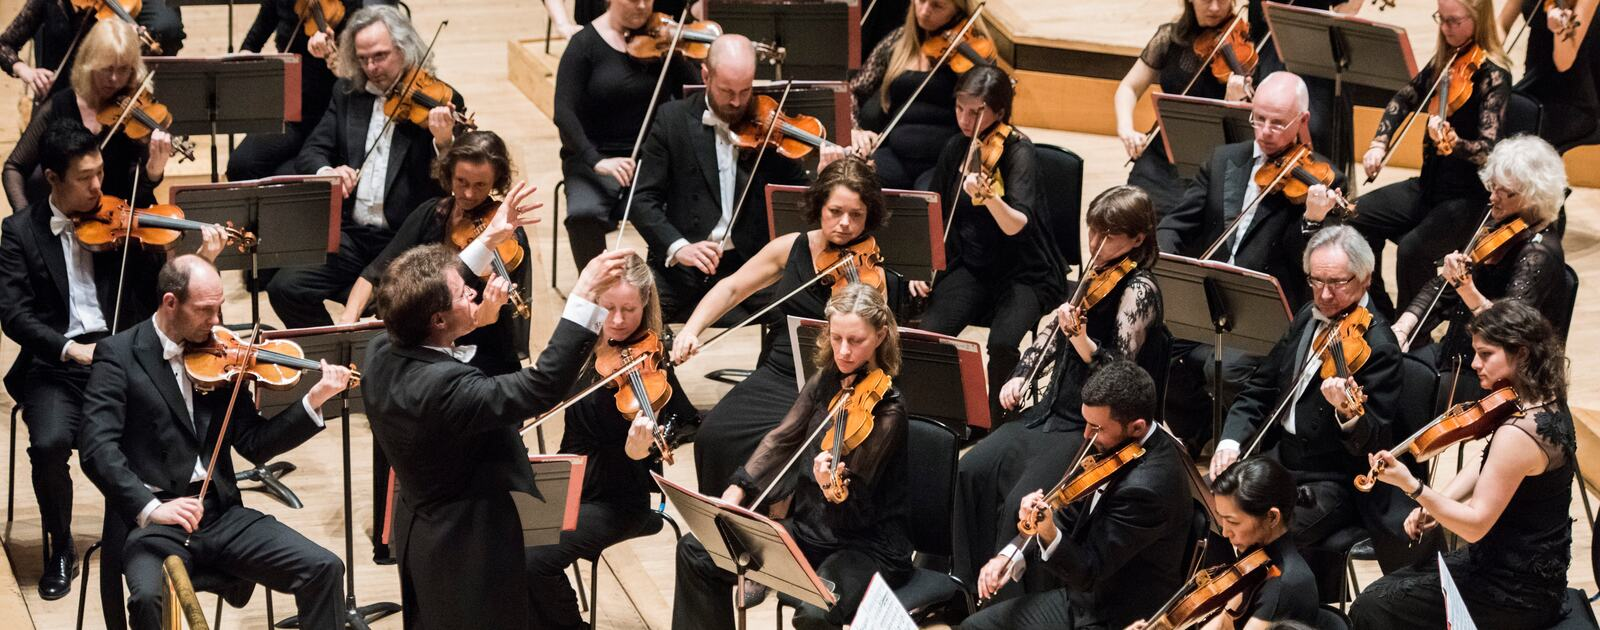 orchestra on stage